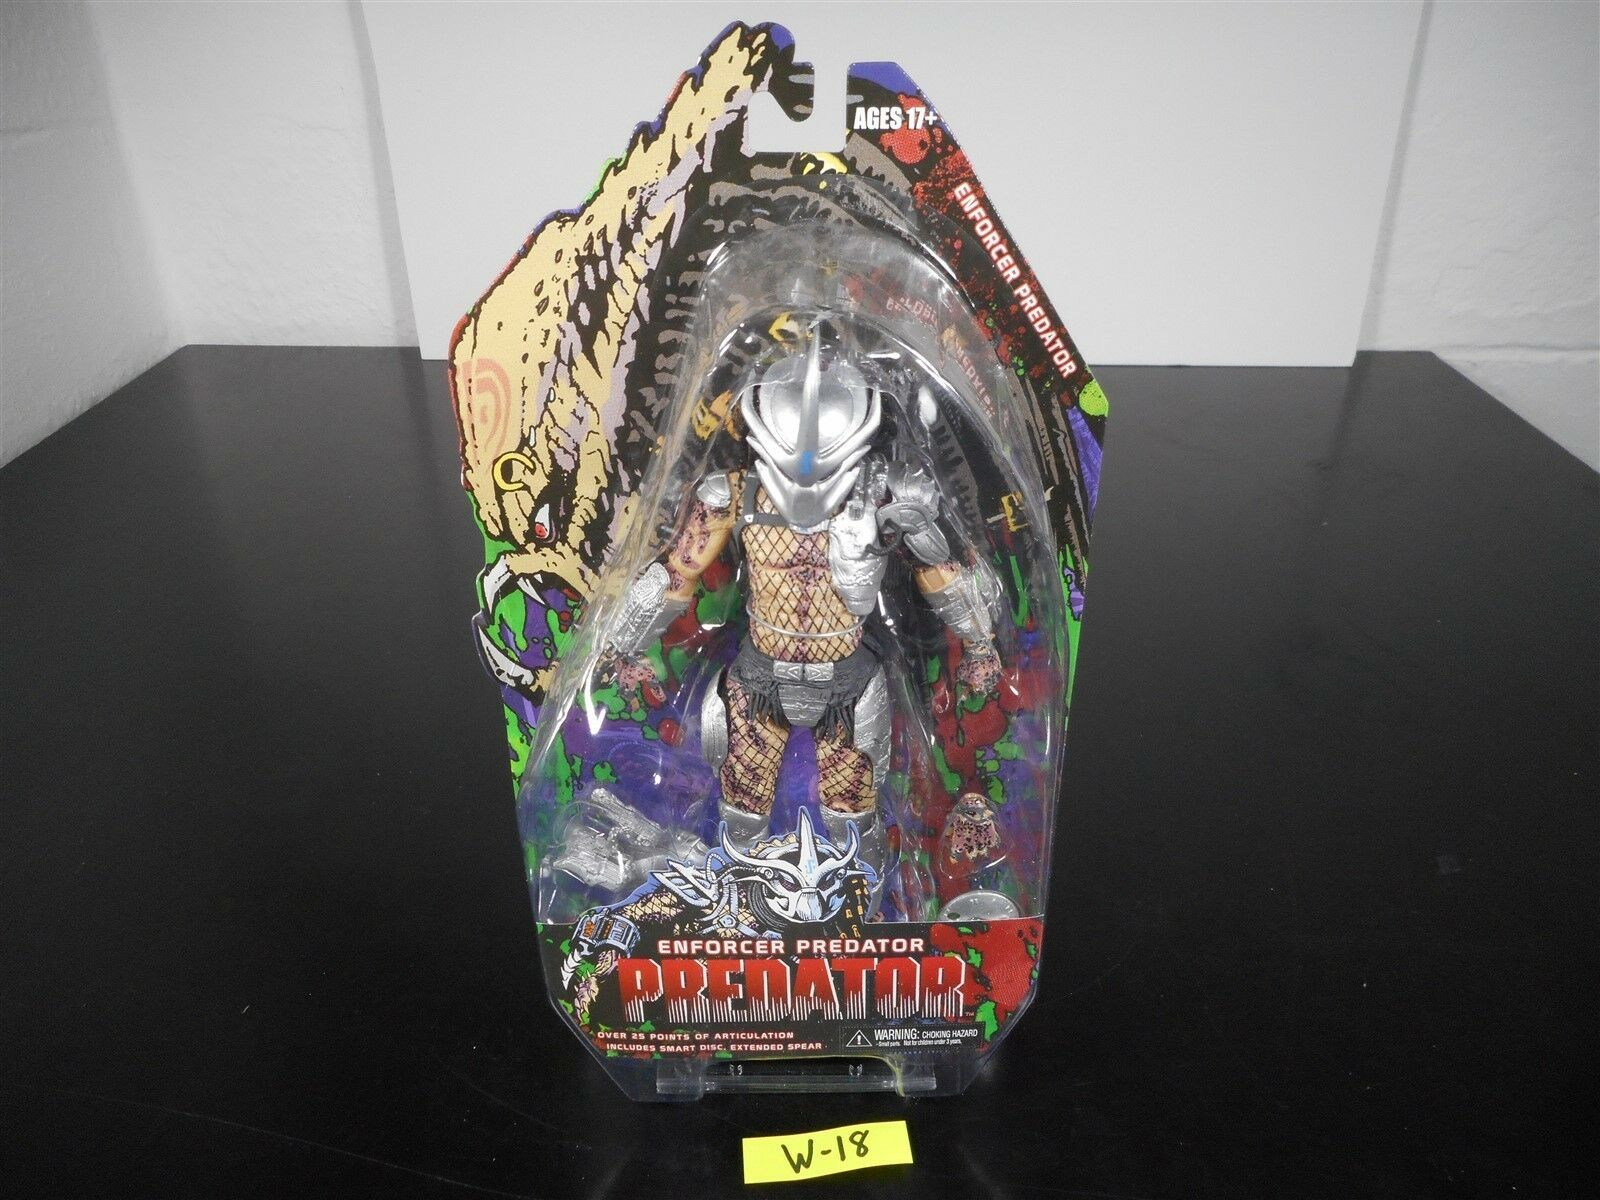 NEW   ENFORCER ProssoATOR NECA ACTION FIGURE 2014 INCLUDES EXTENDED SPEAR W-18